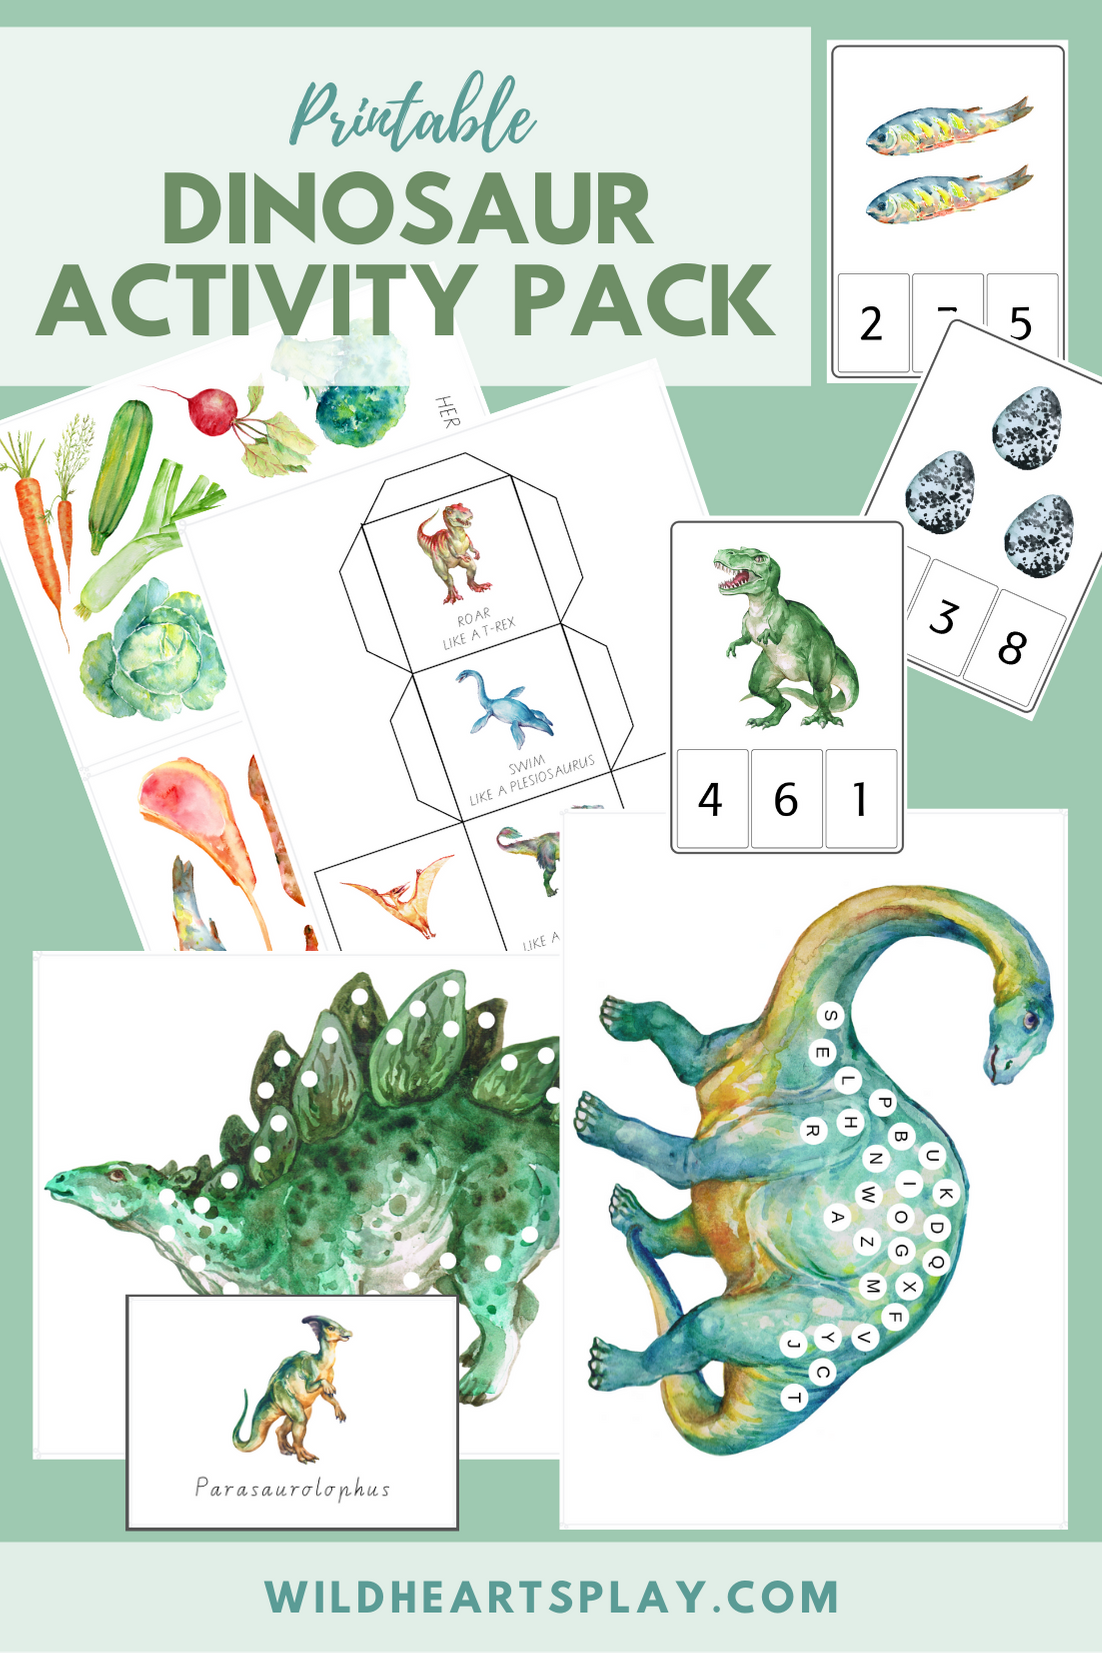 Printable Dinosaur Activity Pack For Kids Etsy In 2020 Dinosaur Activities Printable Activities For Kids Activity Pack